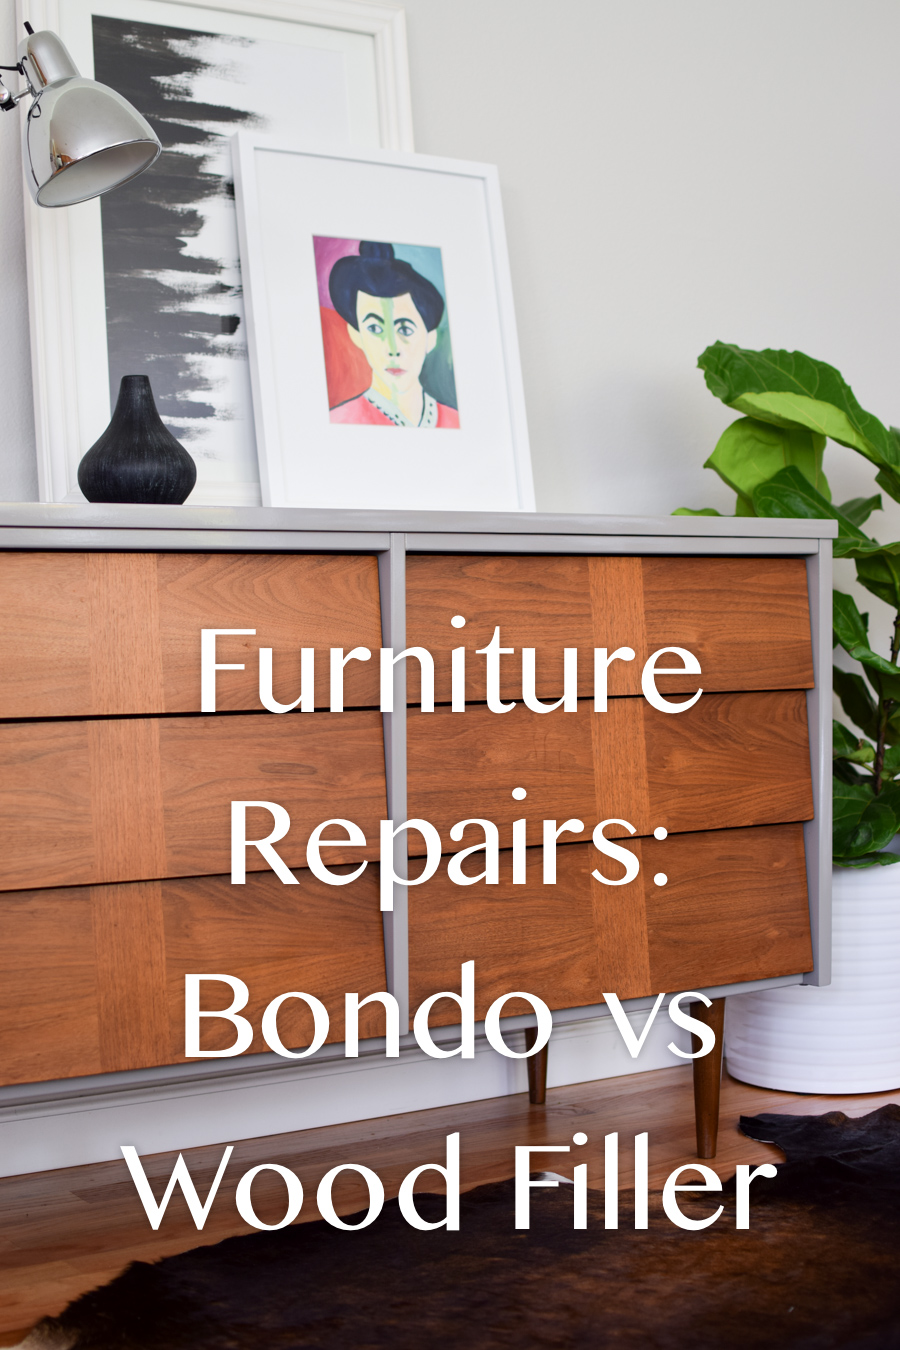 Furniture Repairs: Bondo vs Wood Filler from theweathereddoor.com